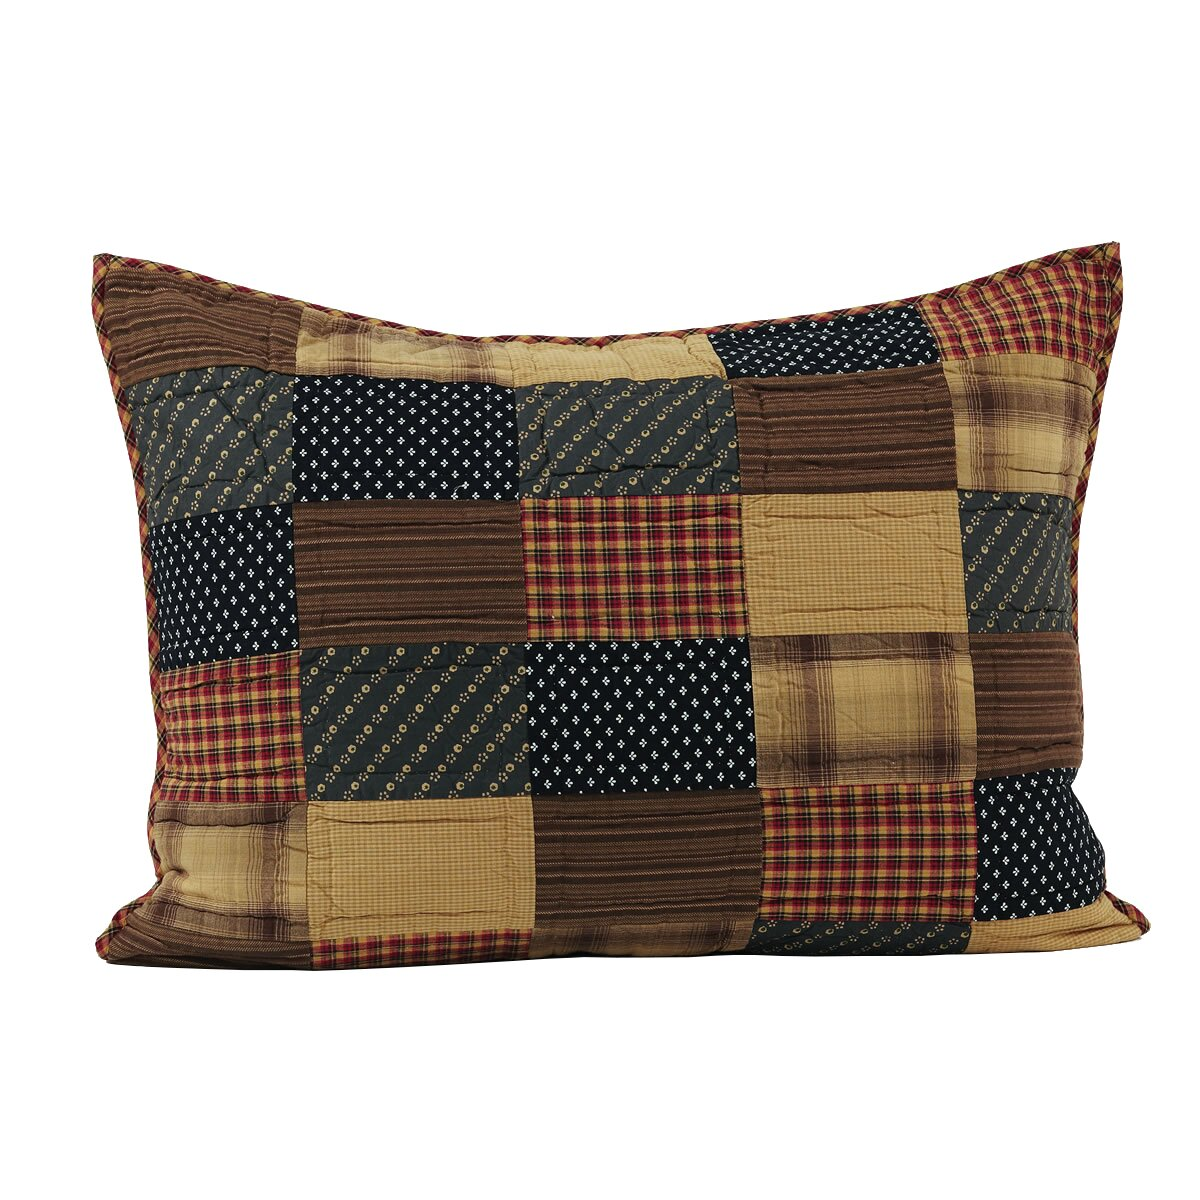 vhc brands patriotic quilt collection - Vhc Brands